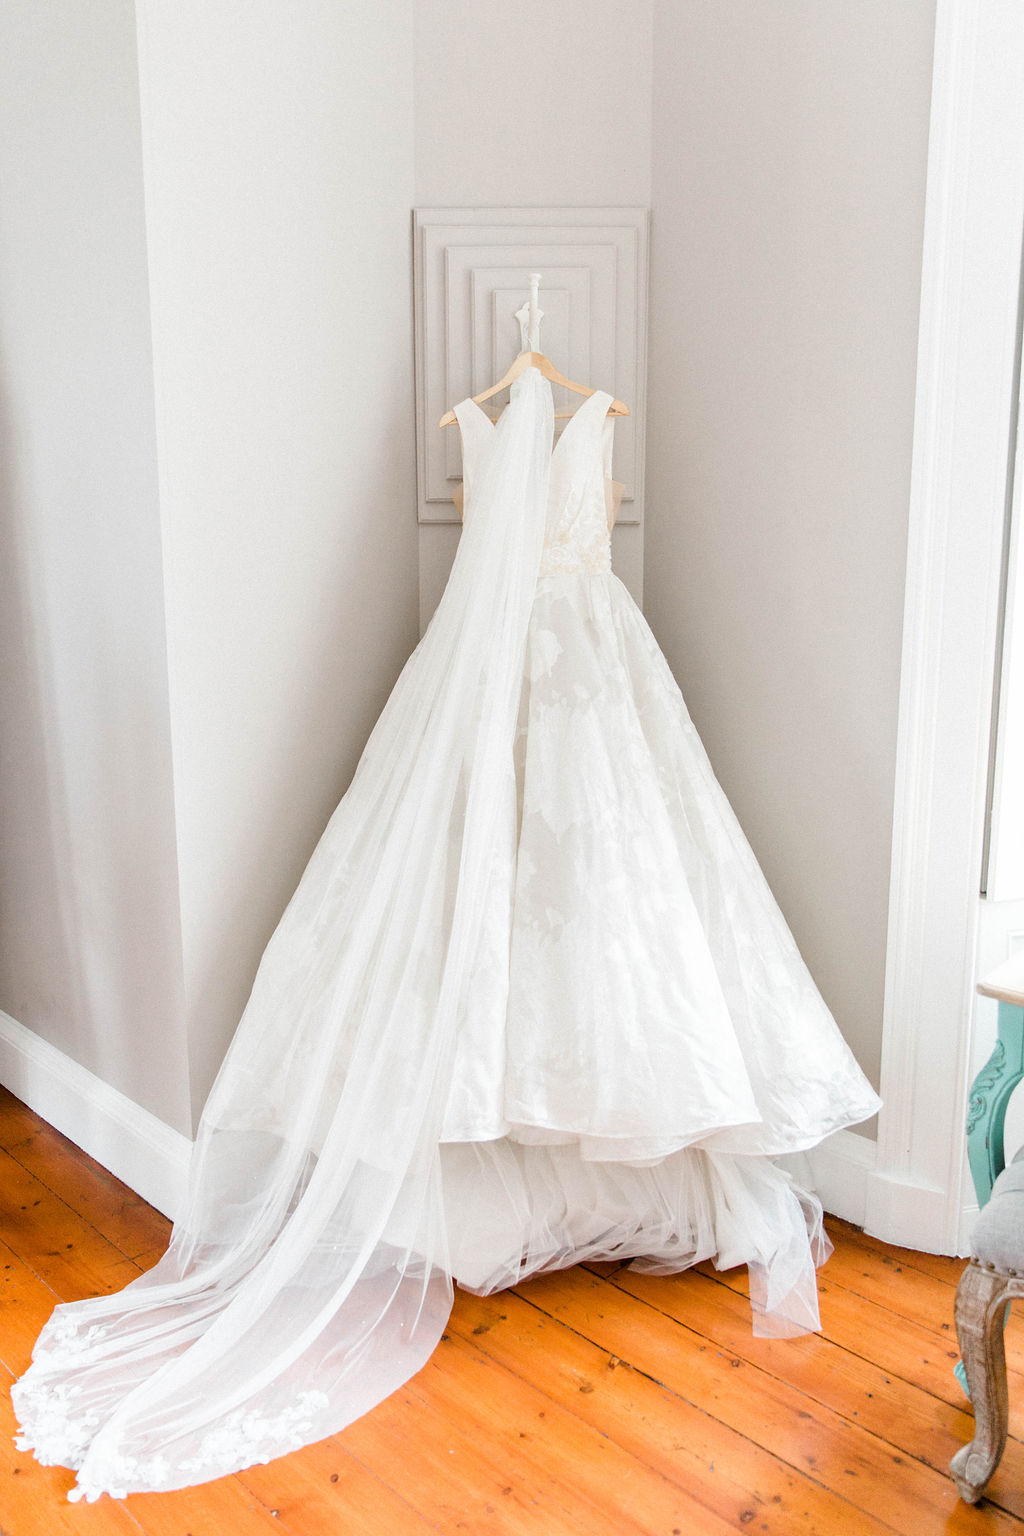 luxury wedding gown photo at the luxury wedding